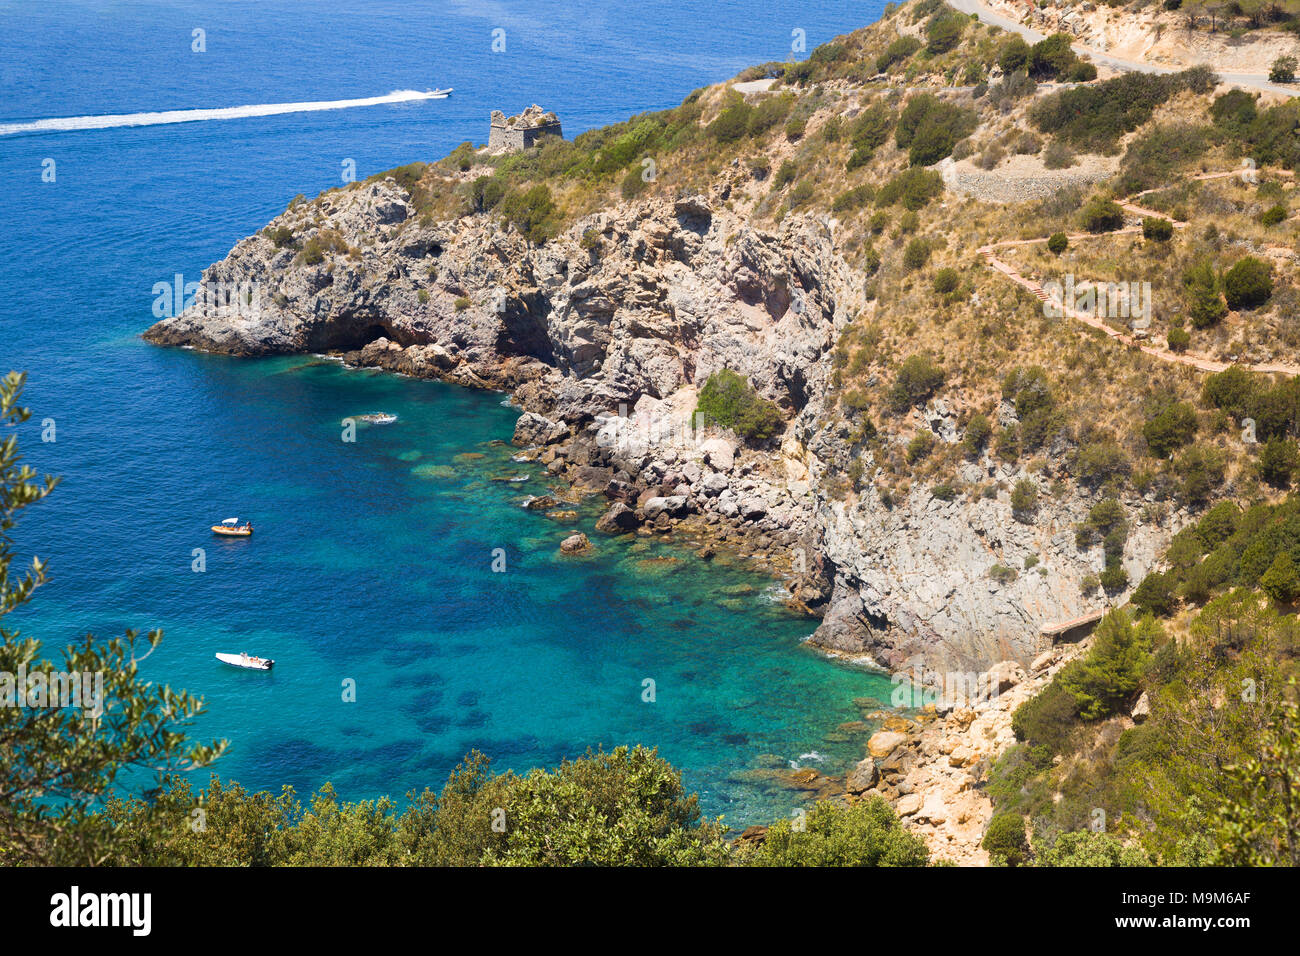 Awesome bay in Monte Argentario in Tuscany, Italy - Stock Image